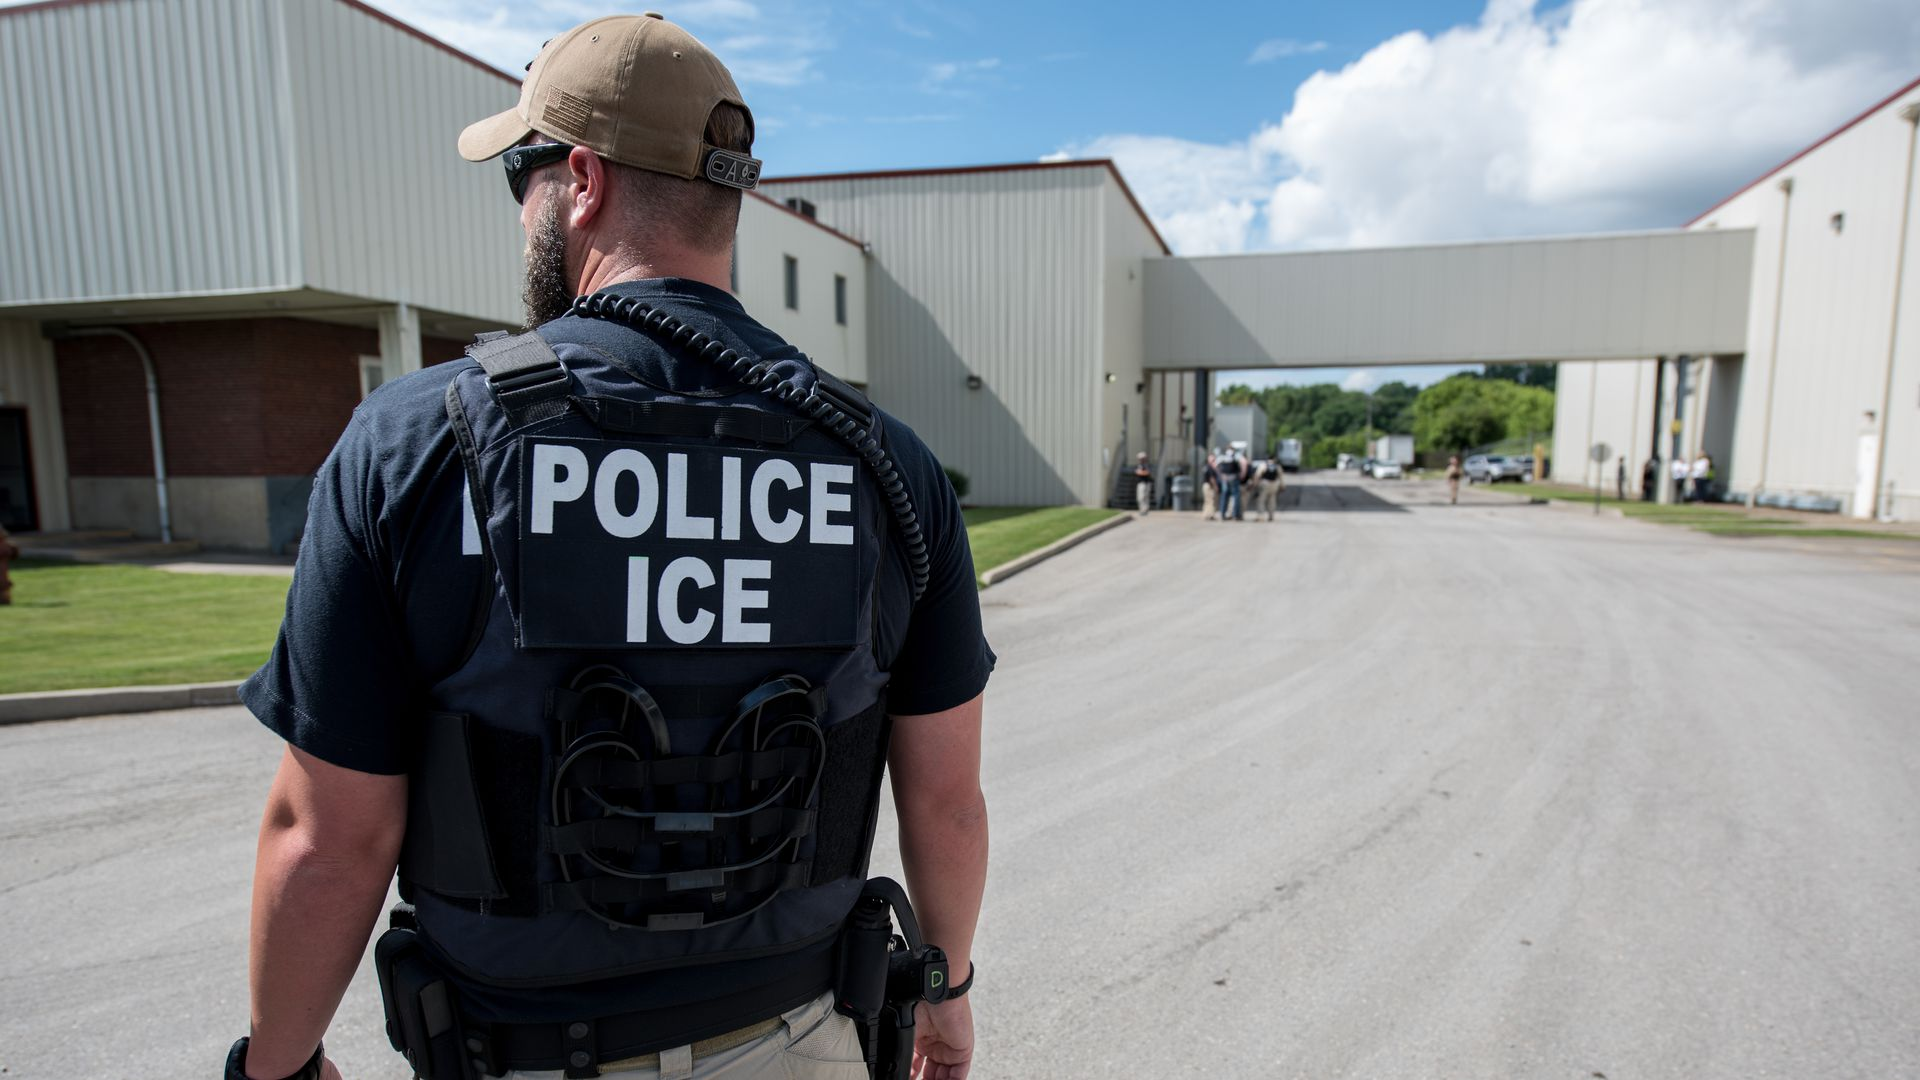 """A white man with a hat and a vest that says """"Police ICE"""" on it with his back to the camera."""